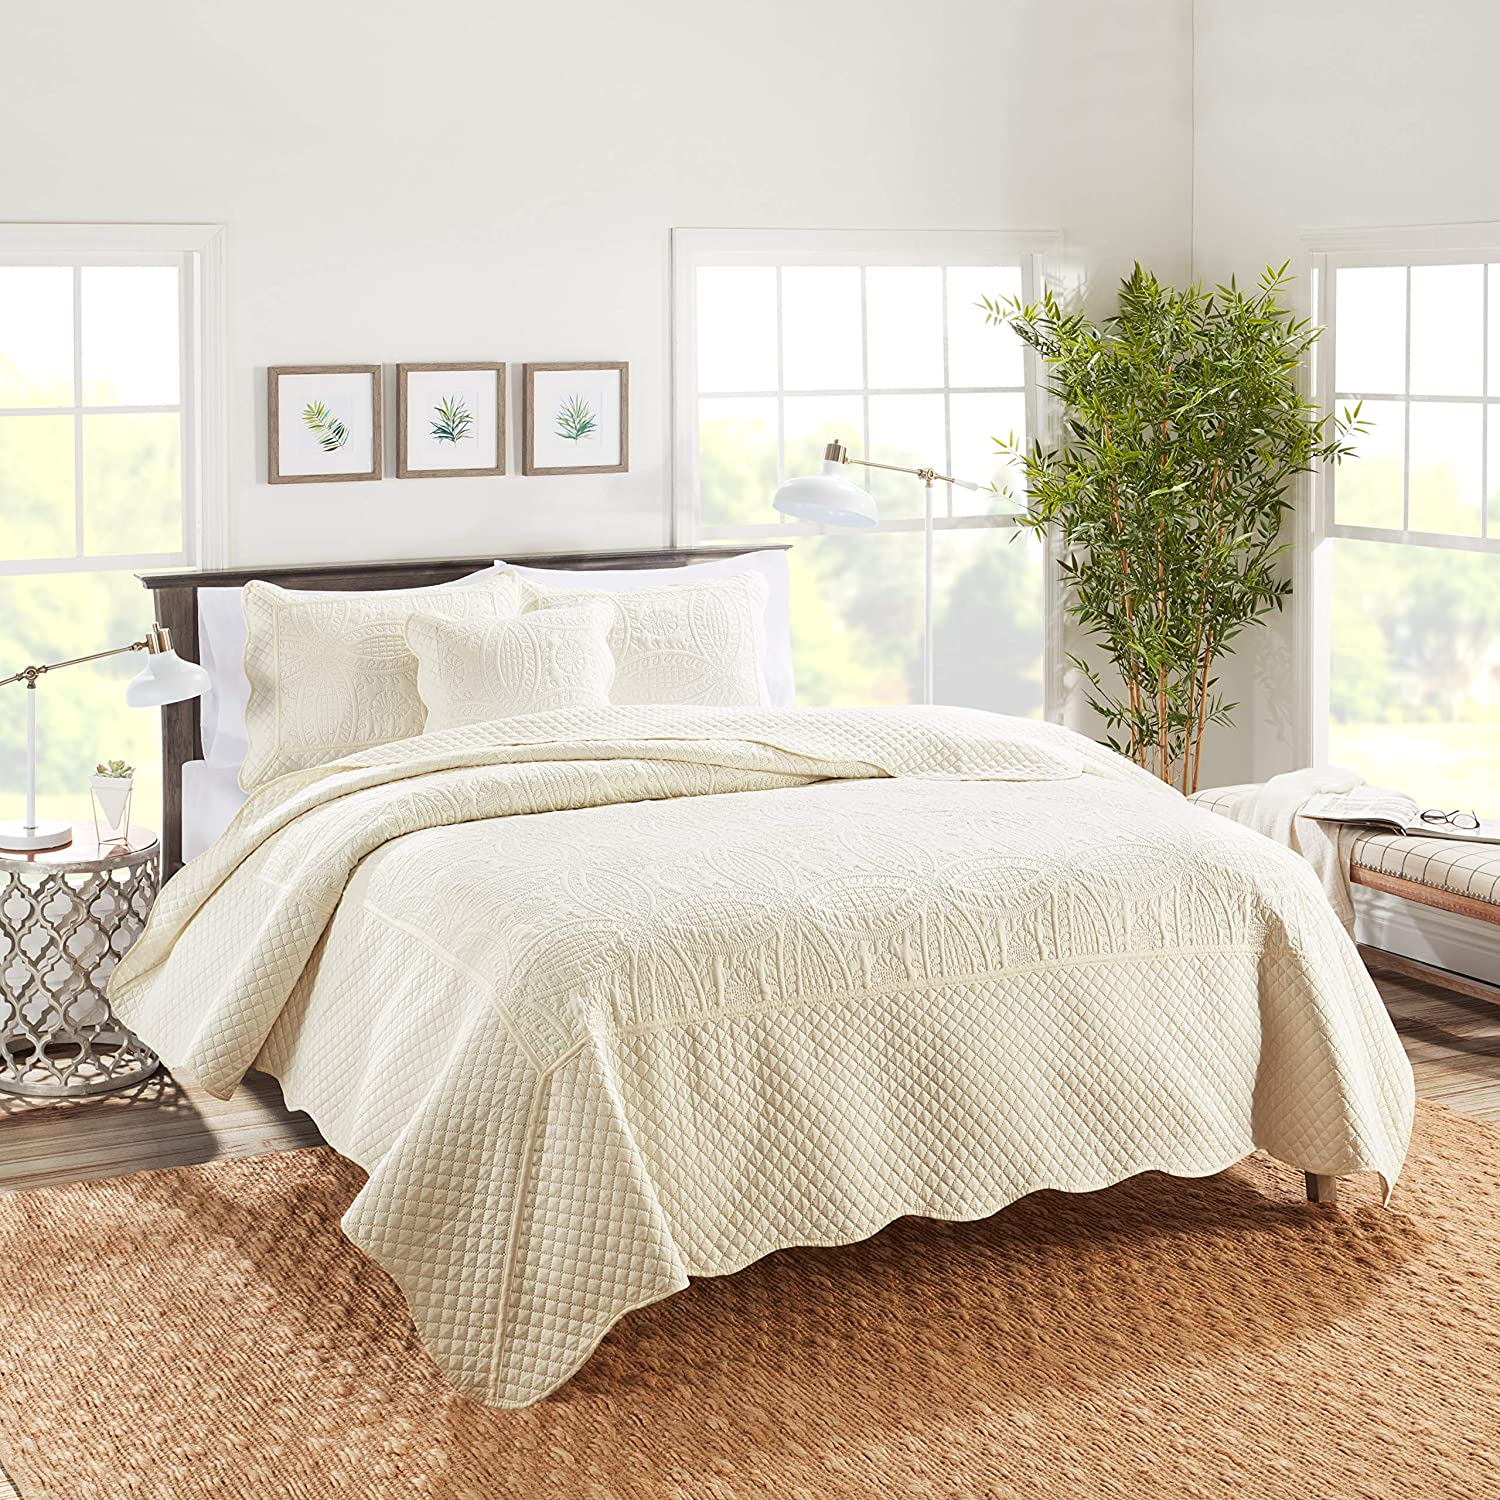 Nestl Bedding 4-Piece Celtic Cable Microfiber Oversized Queen Quilt Set with Pillow Shams, Cream Ivory